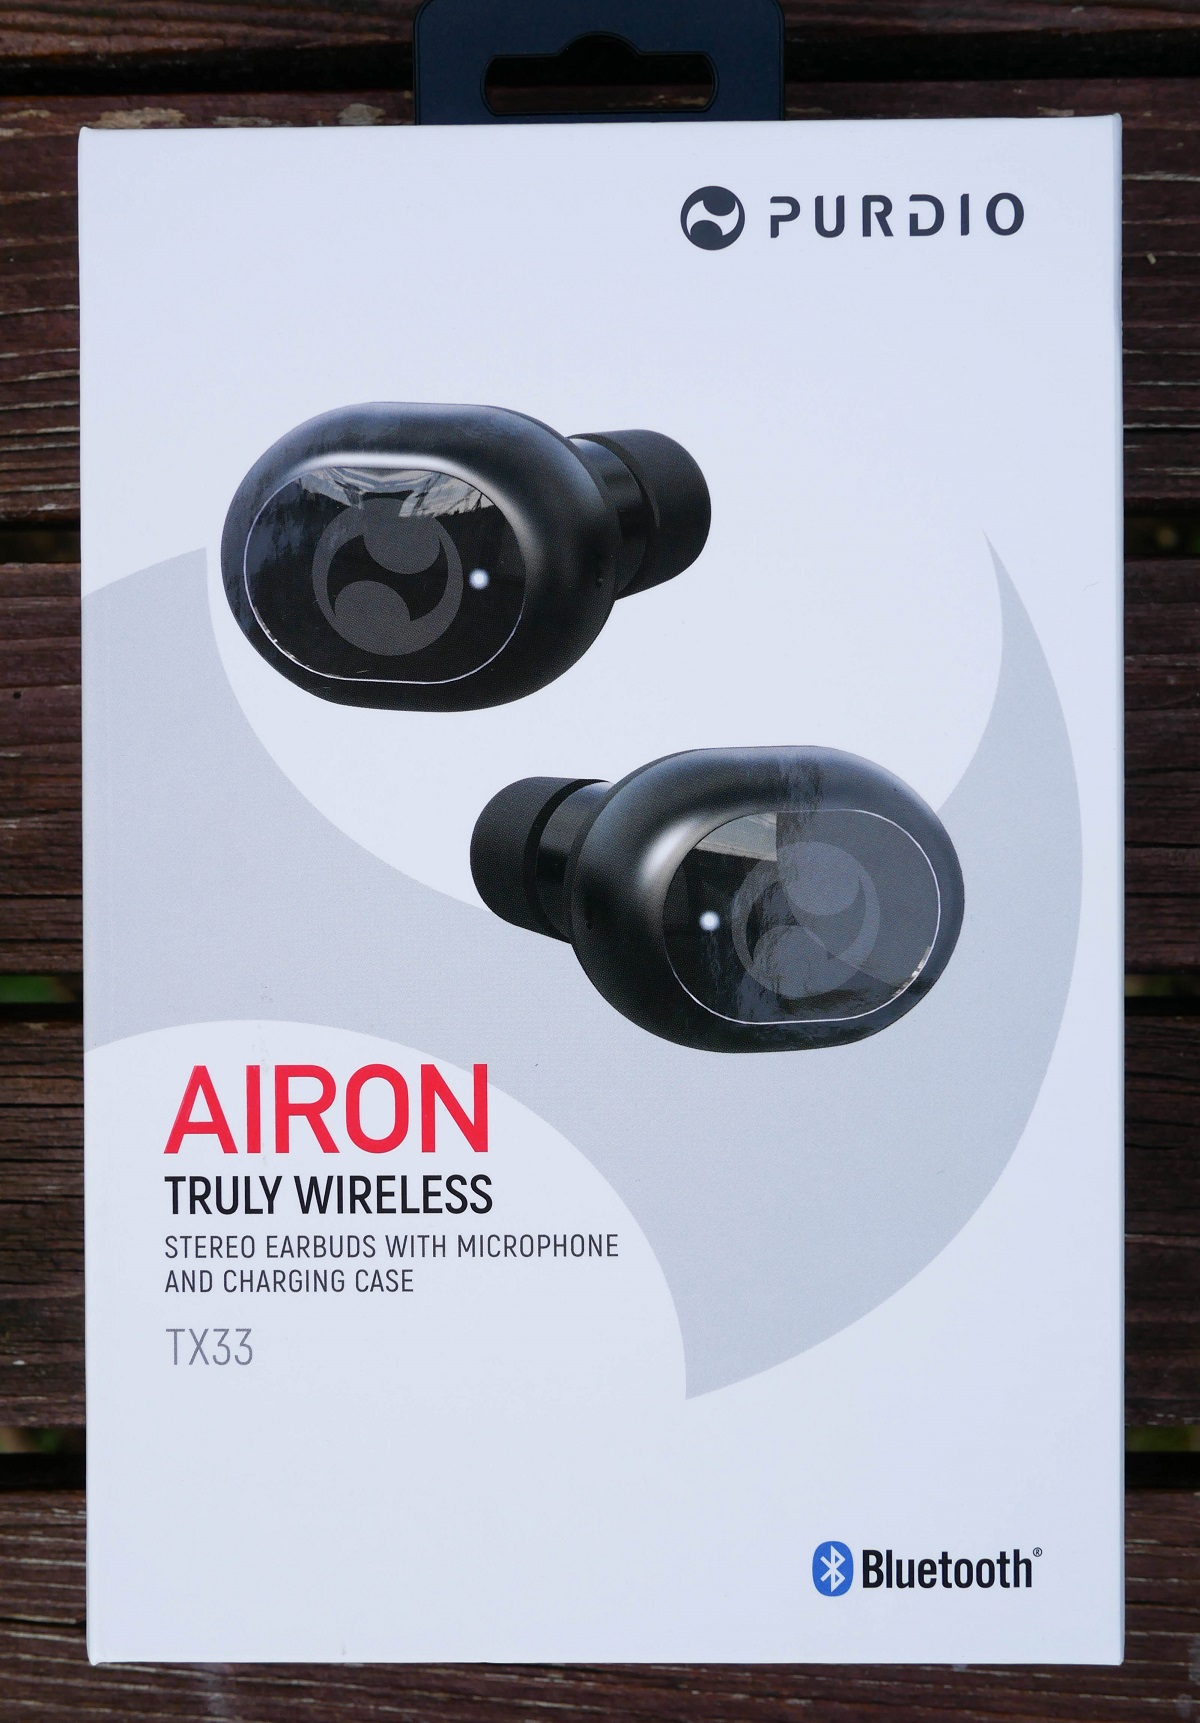 Retail Packaging for the Purdio Airon wireless earphones from Odoyo.